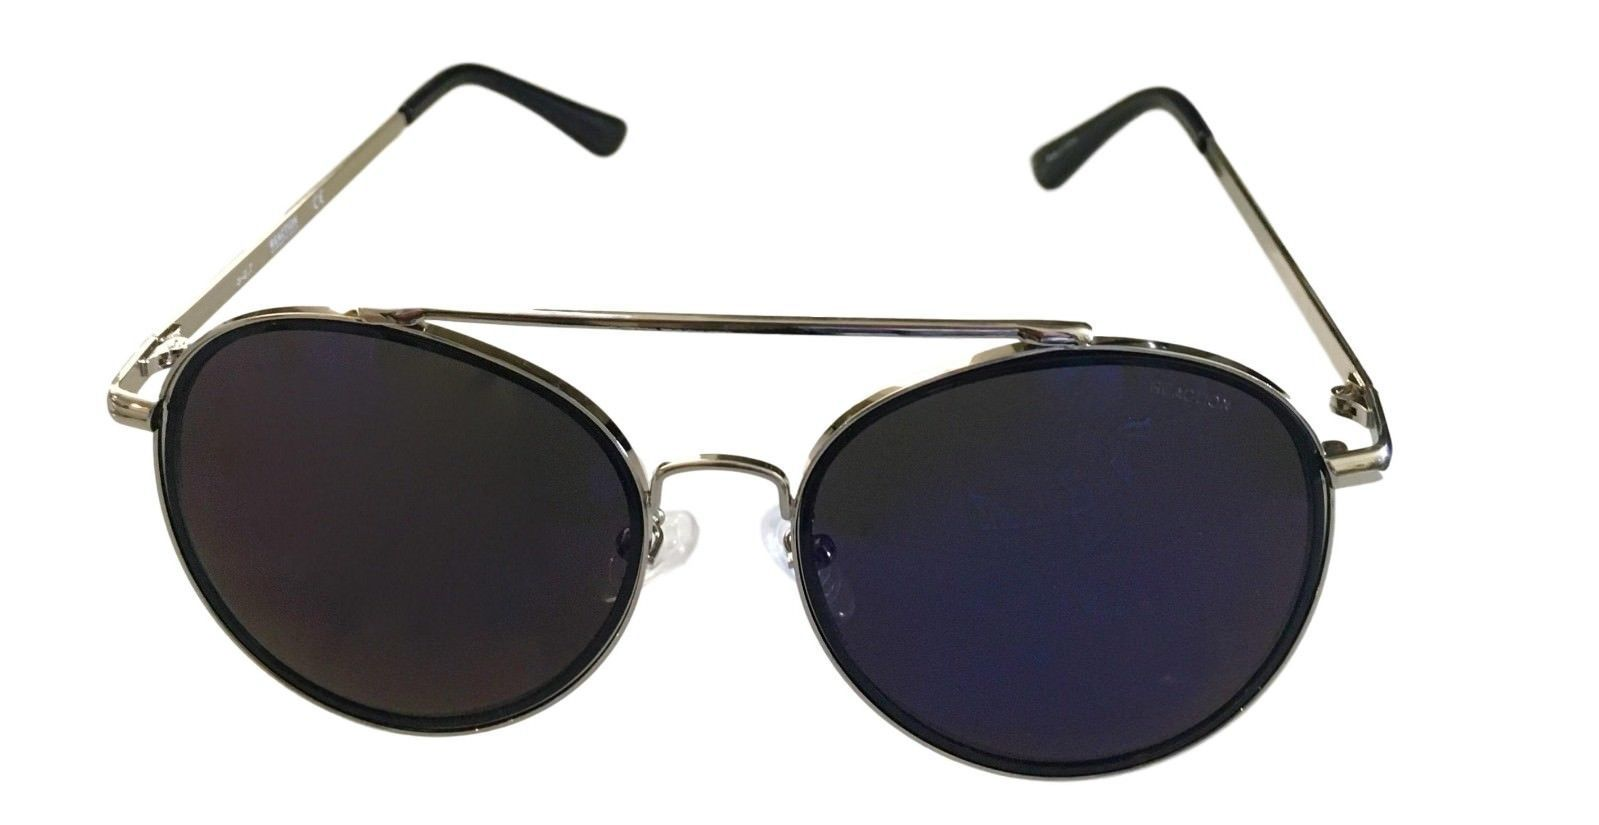 Kenneth Cole Reaction Mens Sunglass Round Silver Metal Blue Flash KC1313 10X image 2